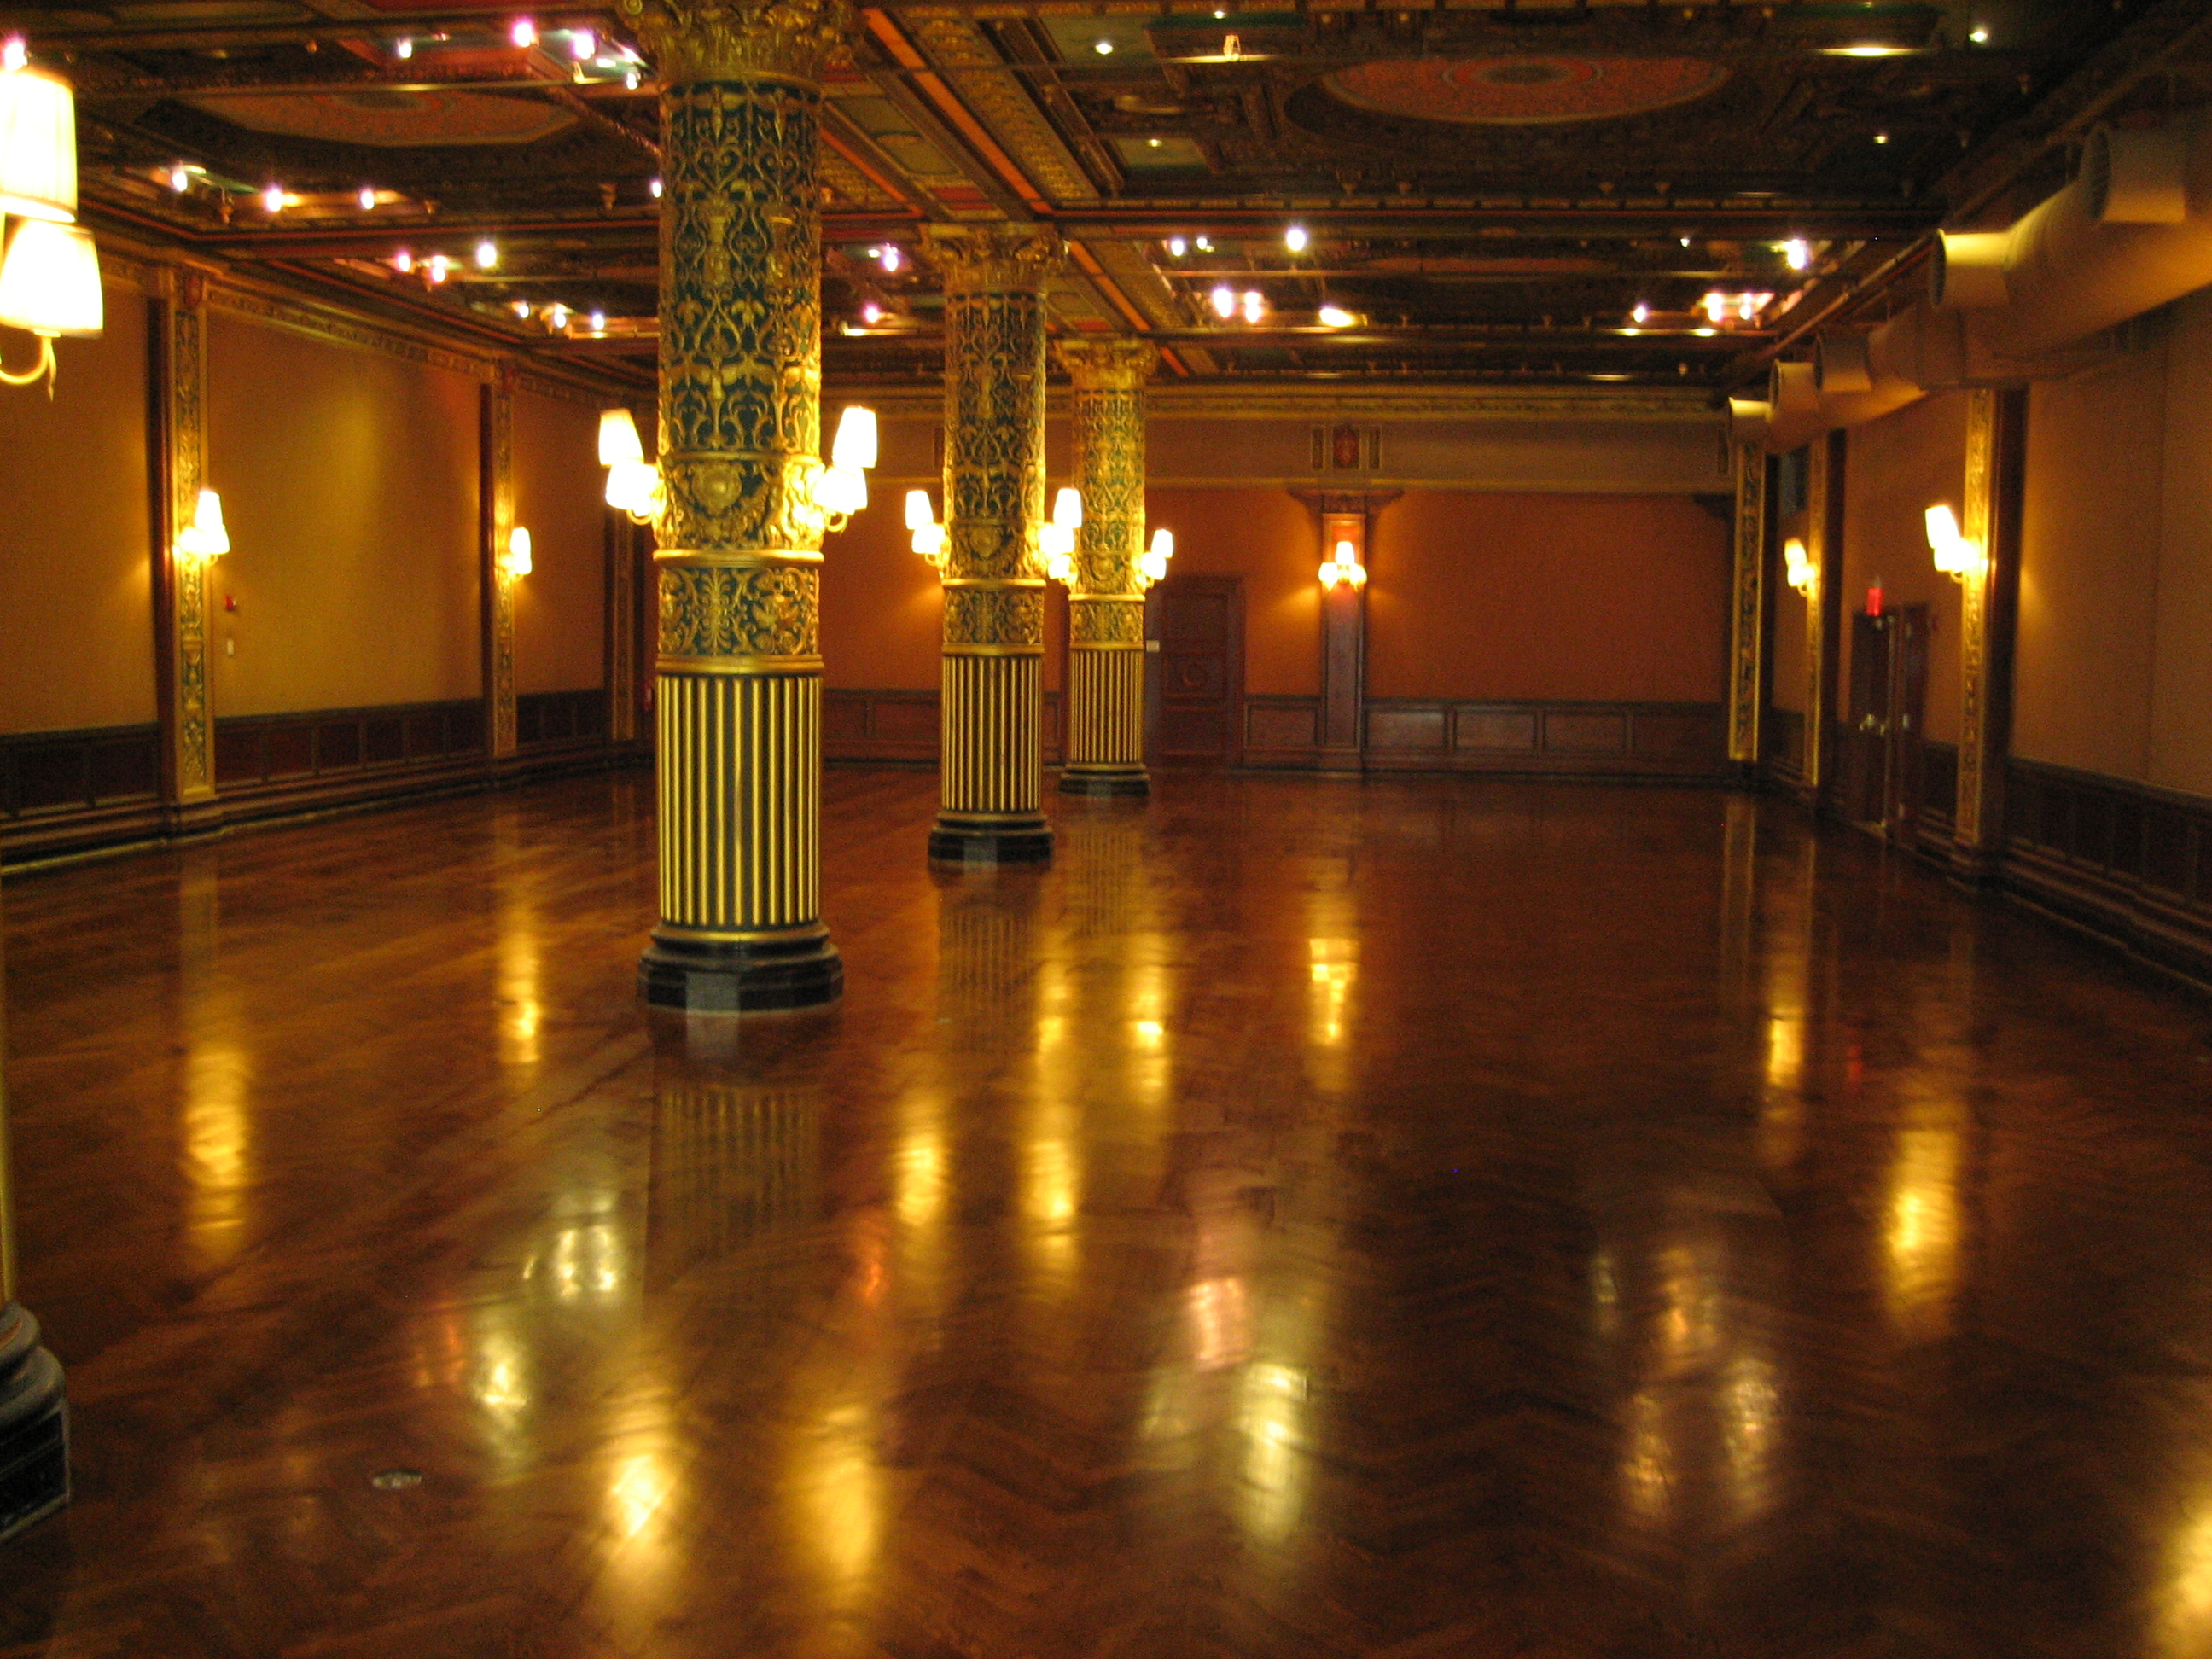 Prince George Hotel- Grand Ballroom after restoration